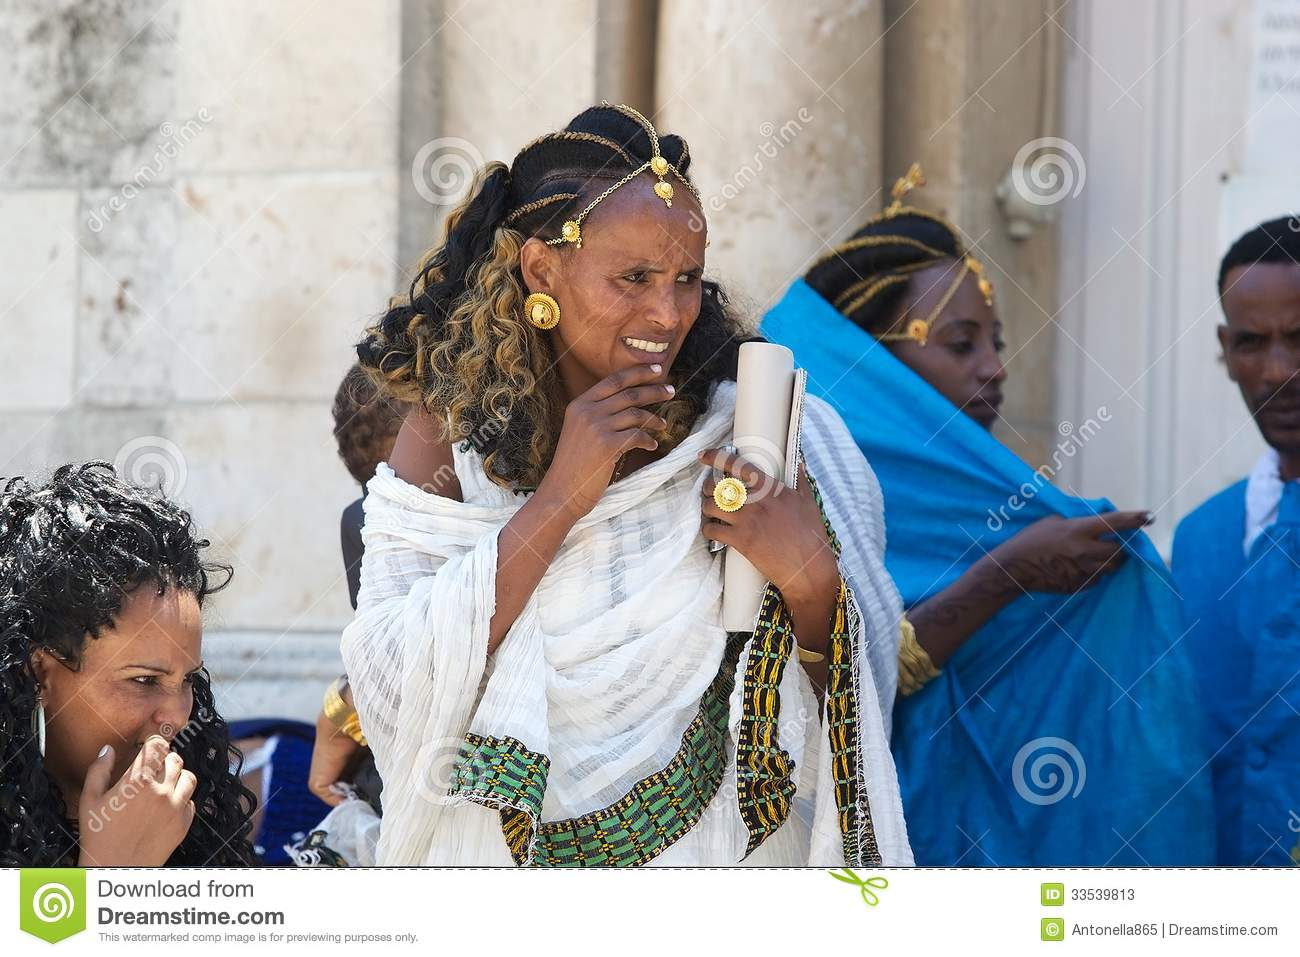 Ethiopian woman editorial stock photo. Image of asian - 33539813